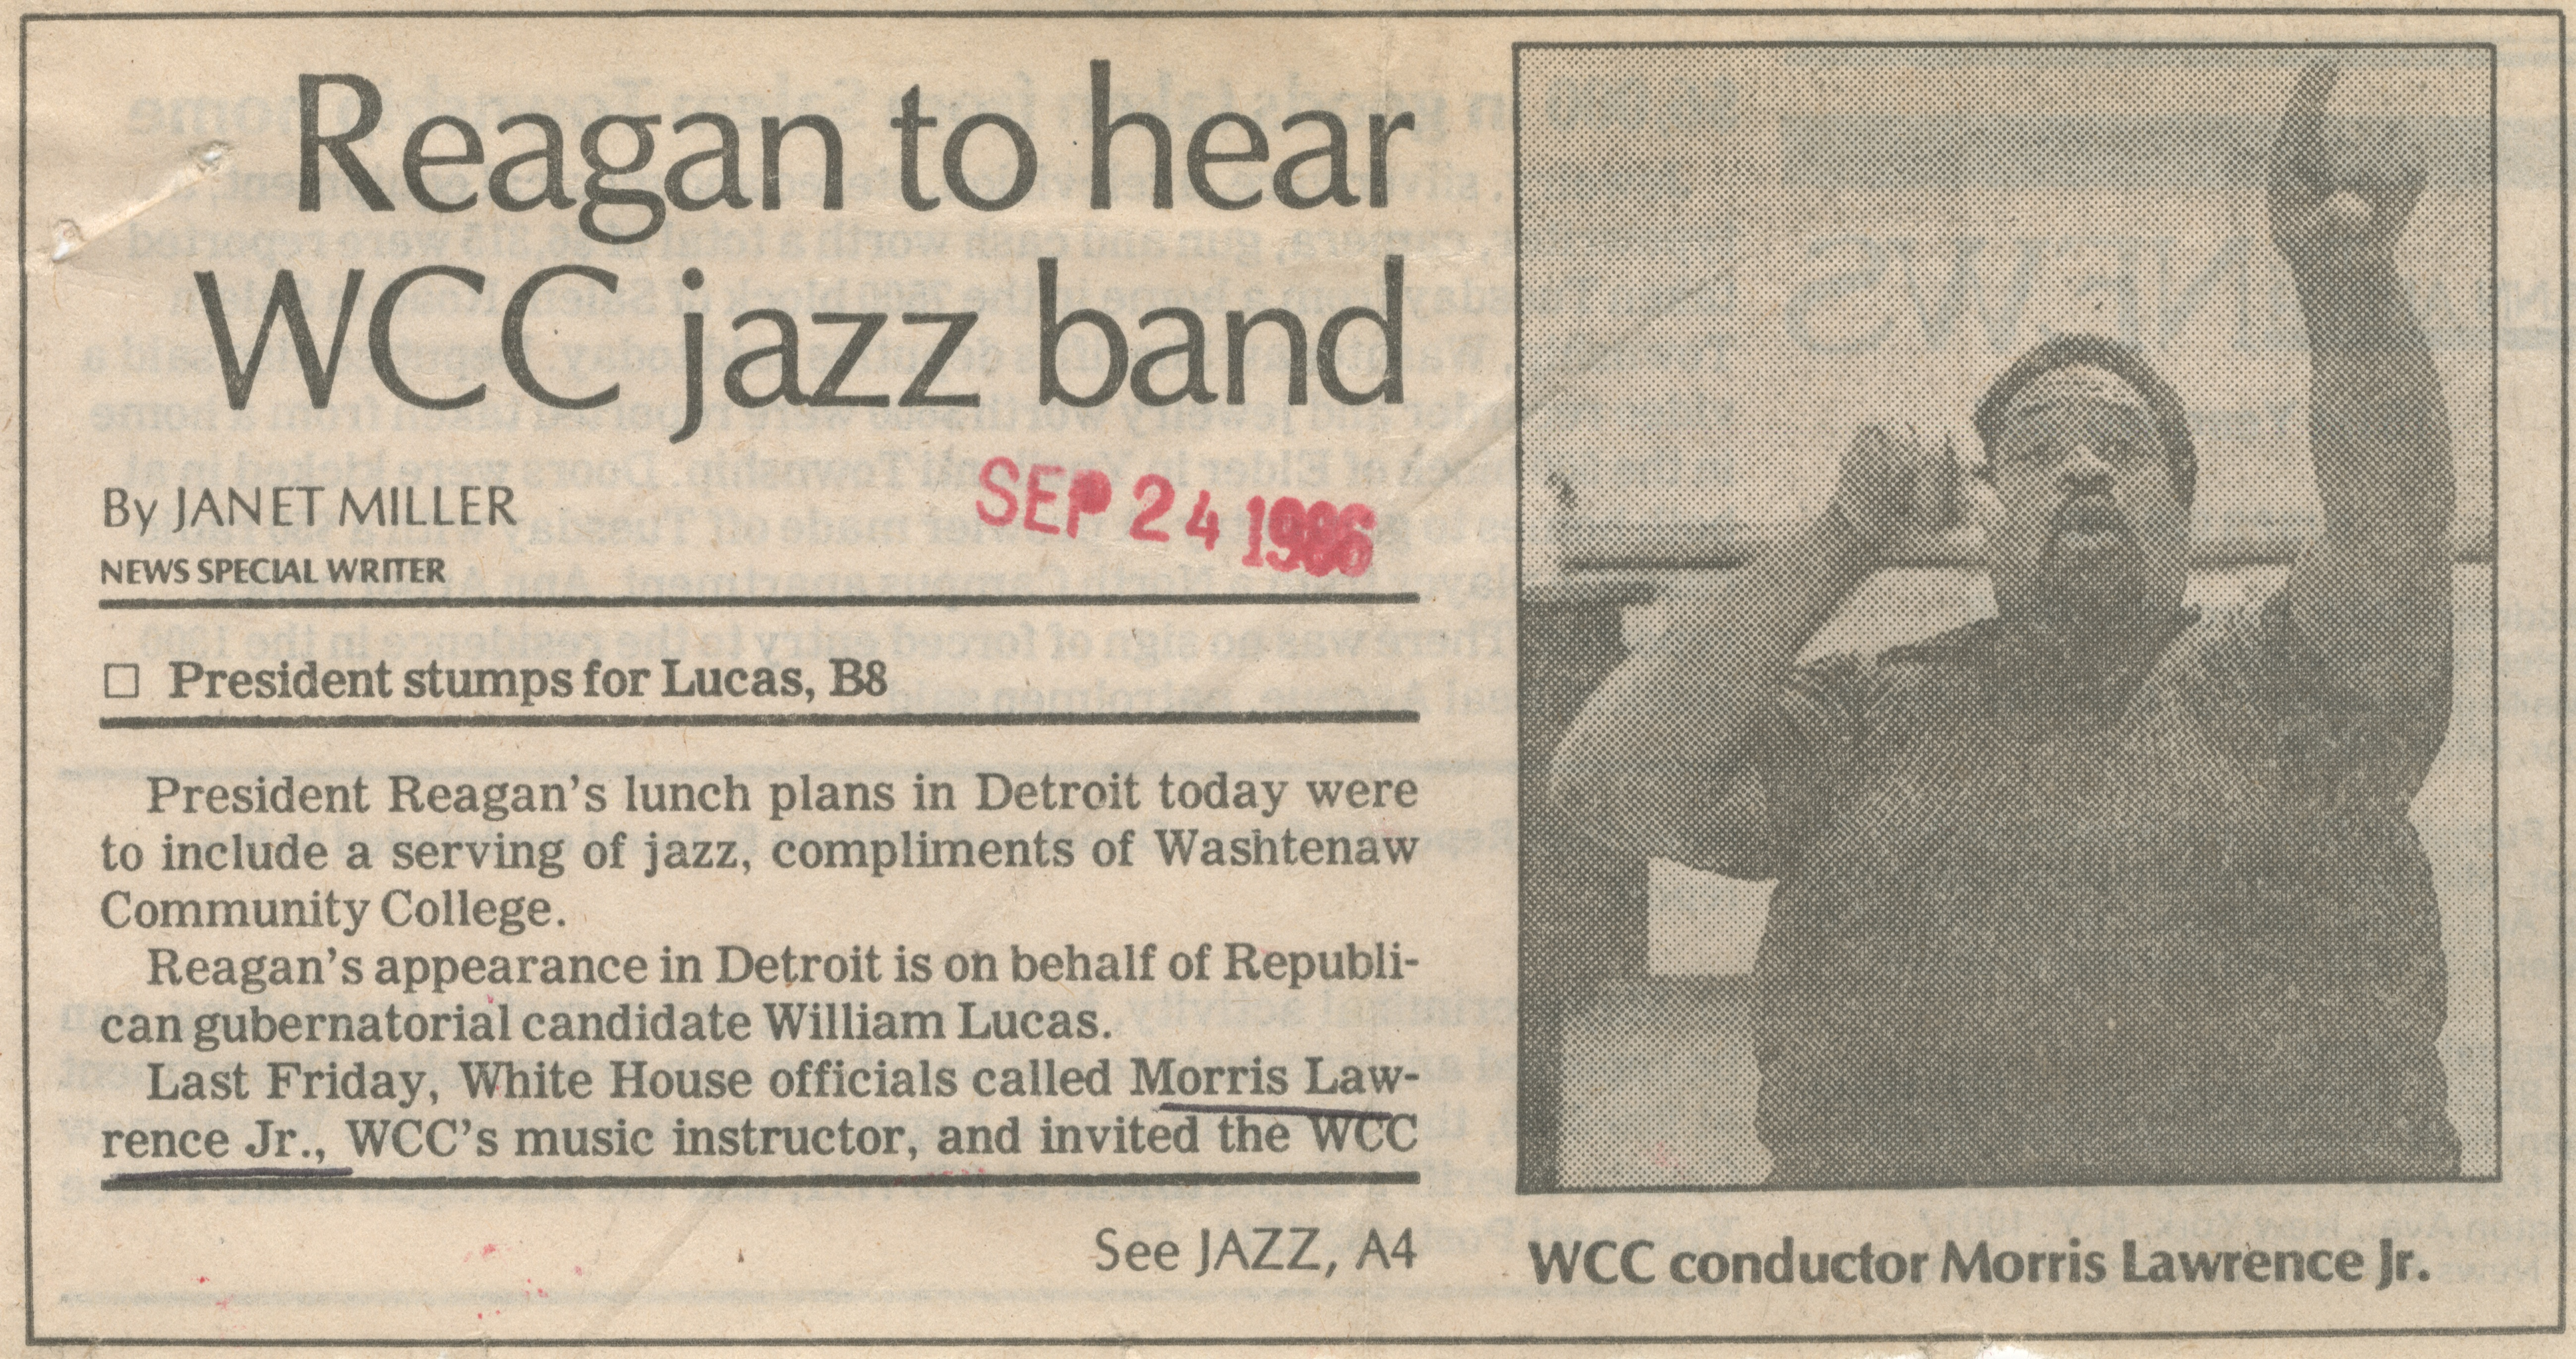 Reagan to hear WCC jazz band image